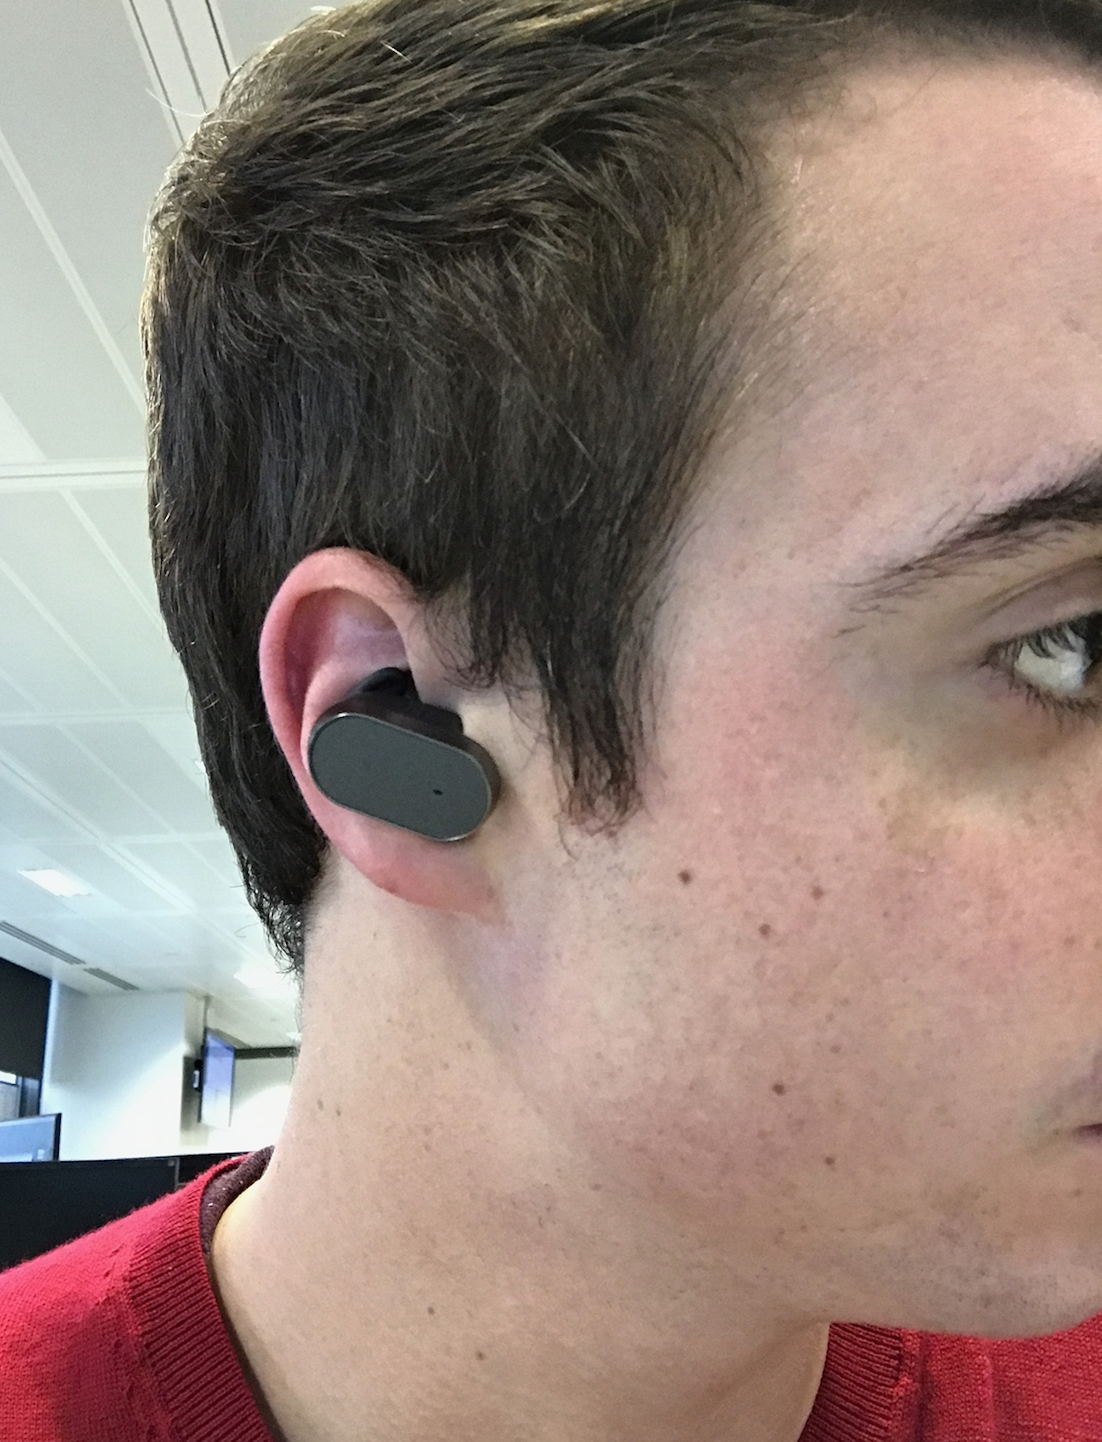 Sony Xperia Ear